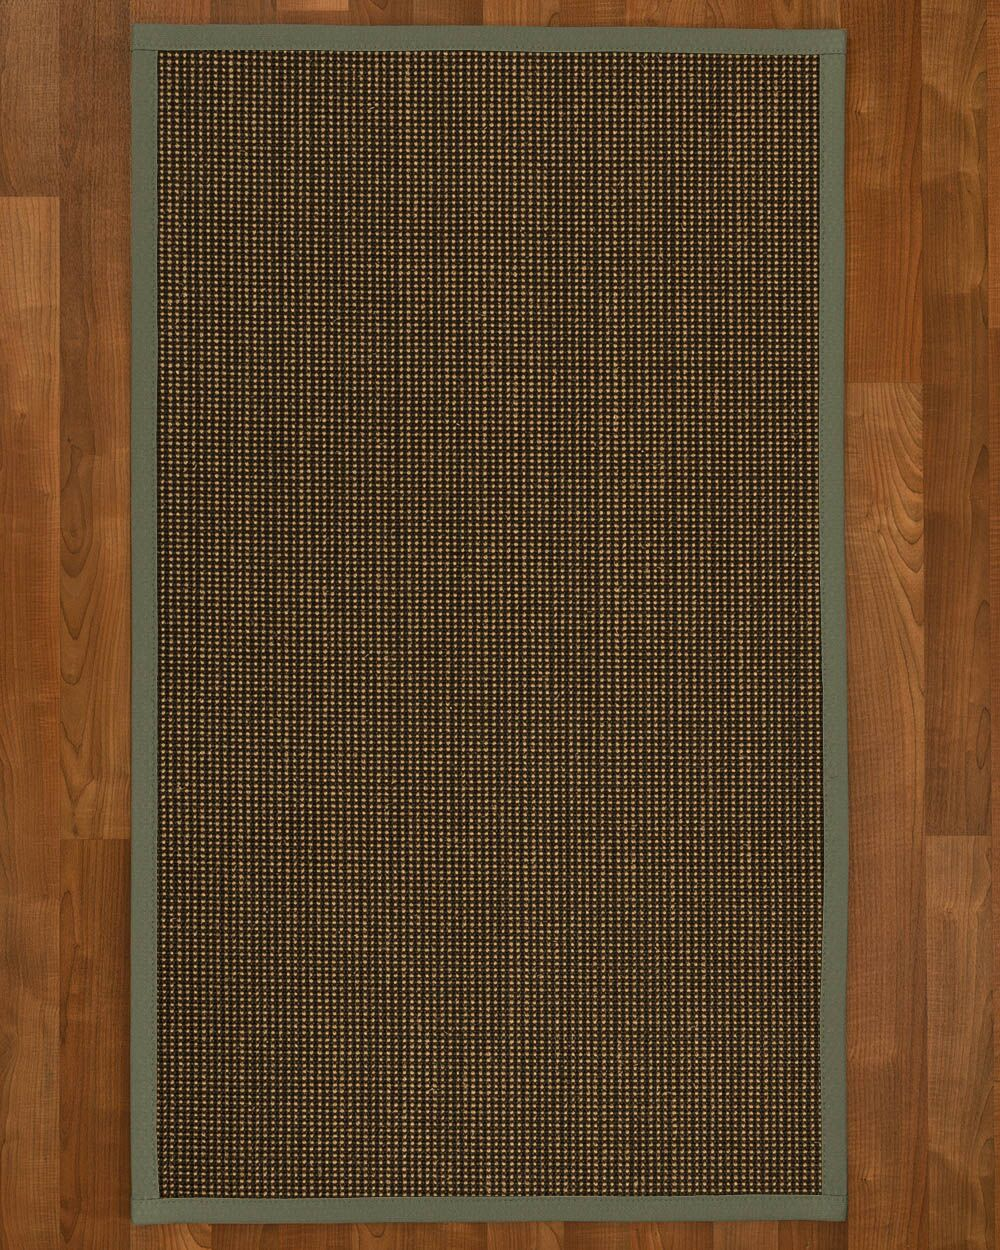 Hedlund Hand Woven Brown Area Rug Rug Size: Rectangle 8' X 10'